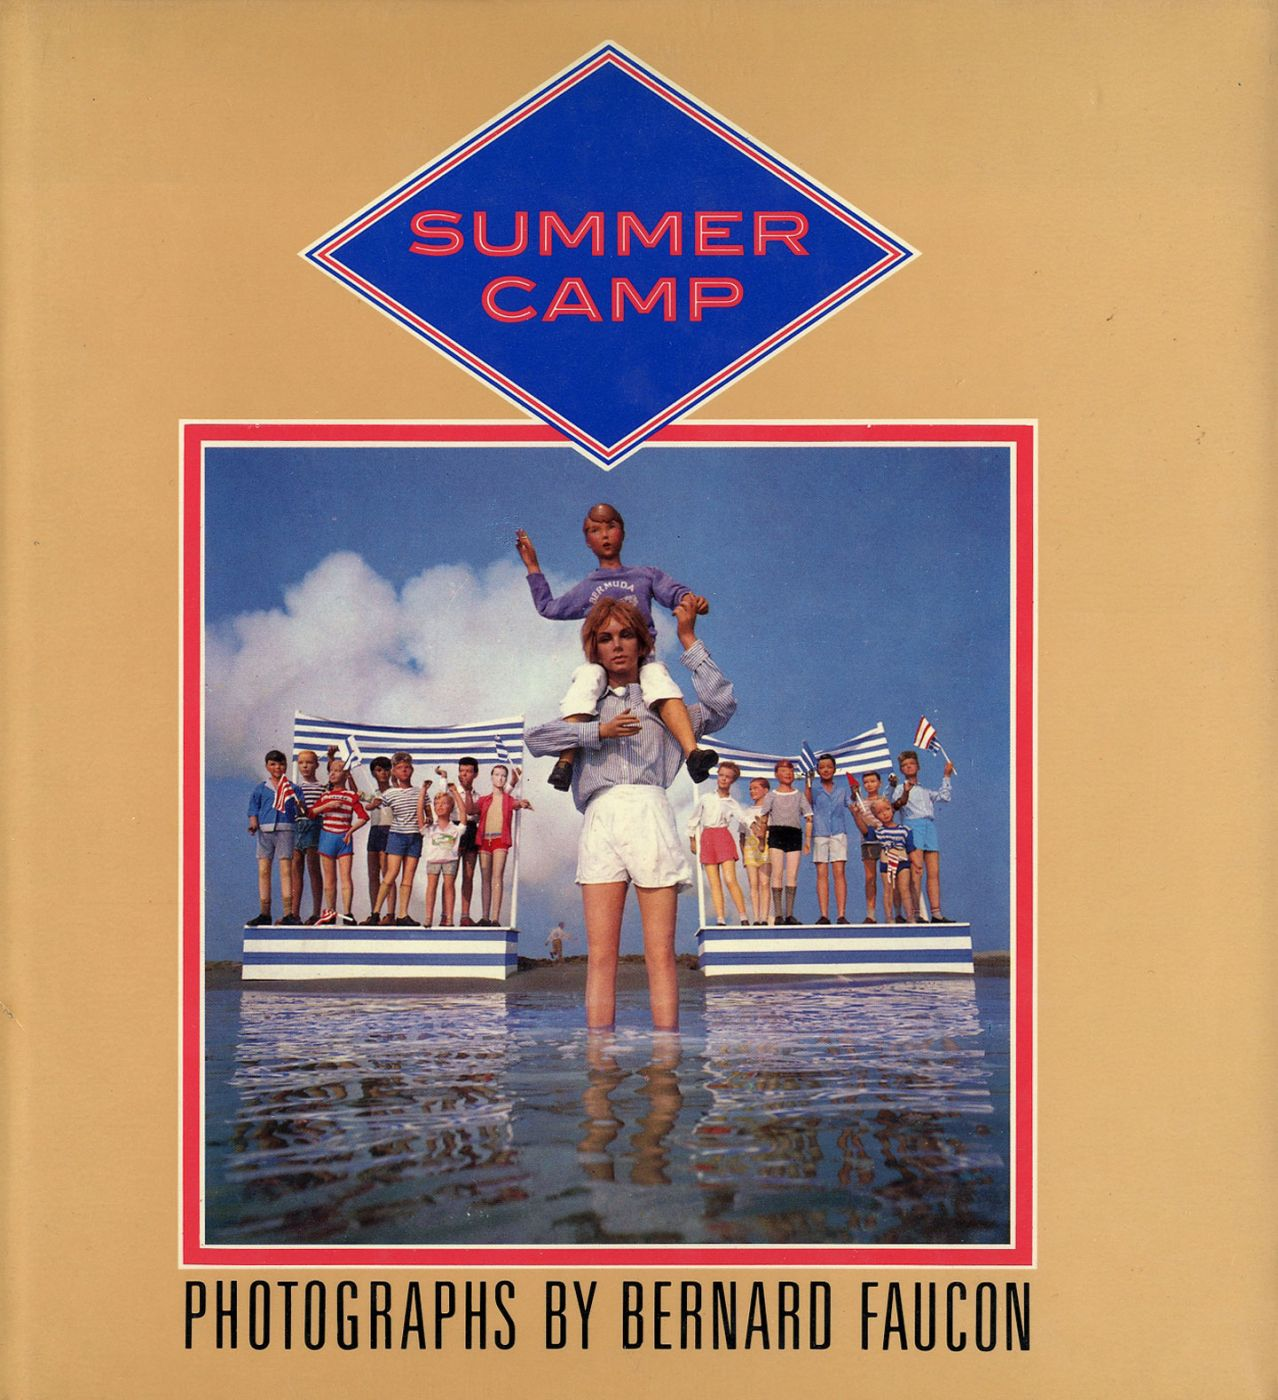 Bernard Faucon: Summer Camp